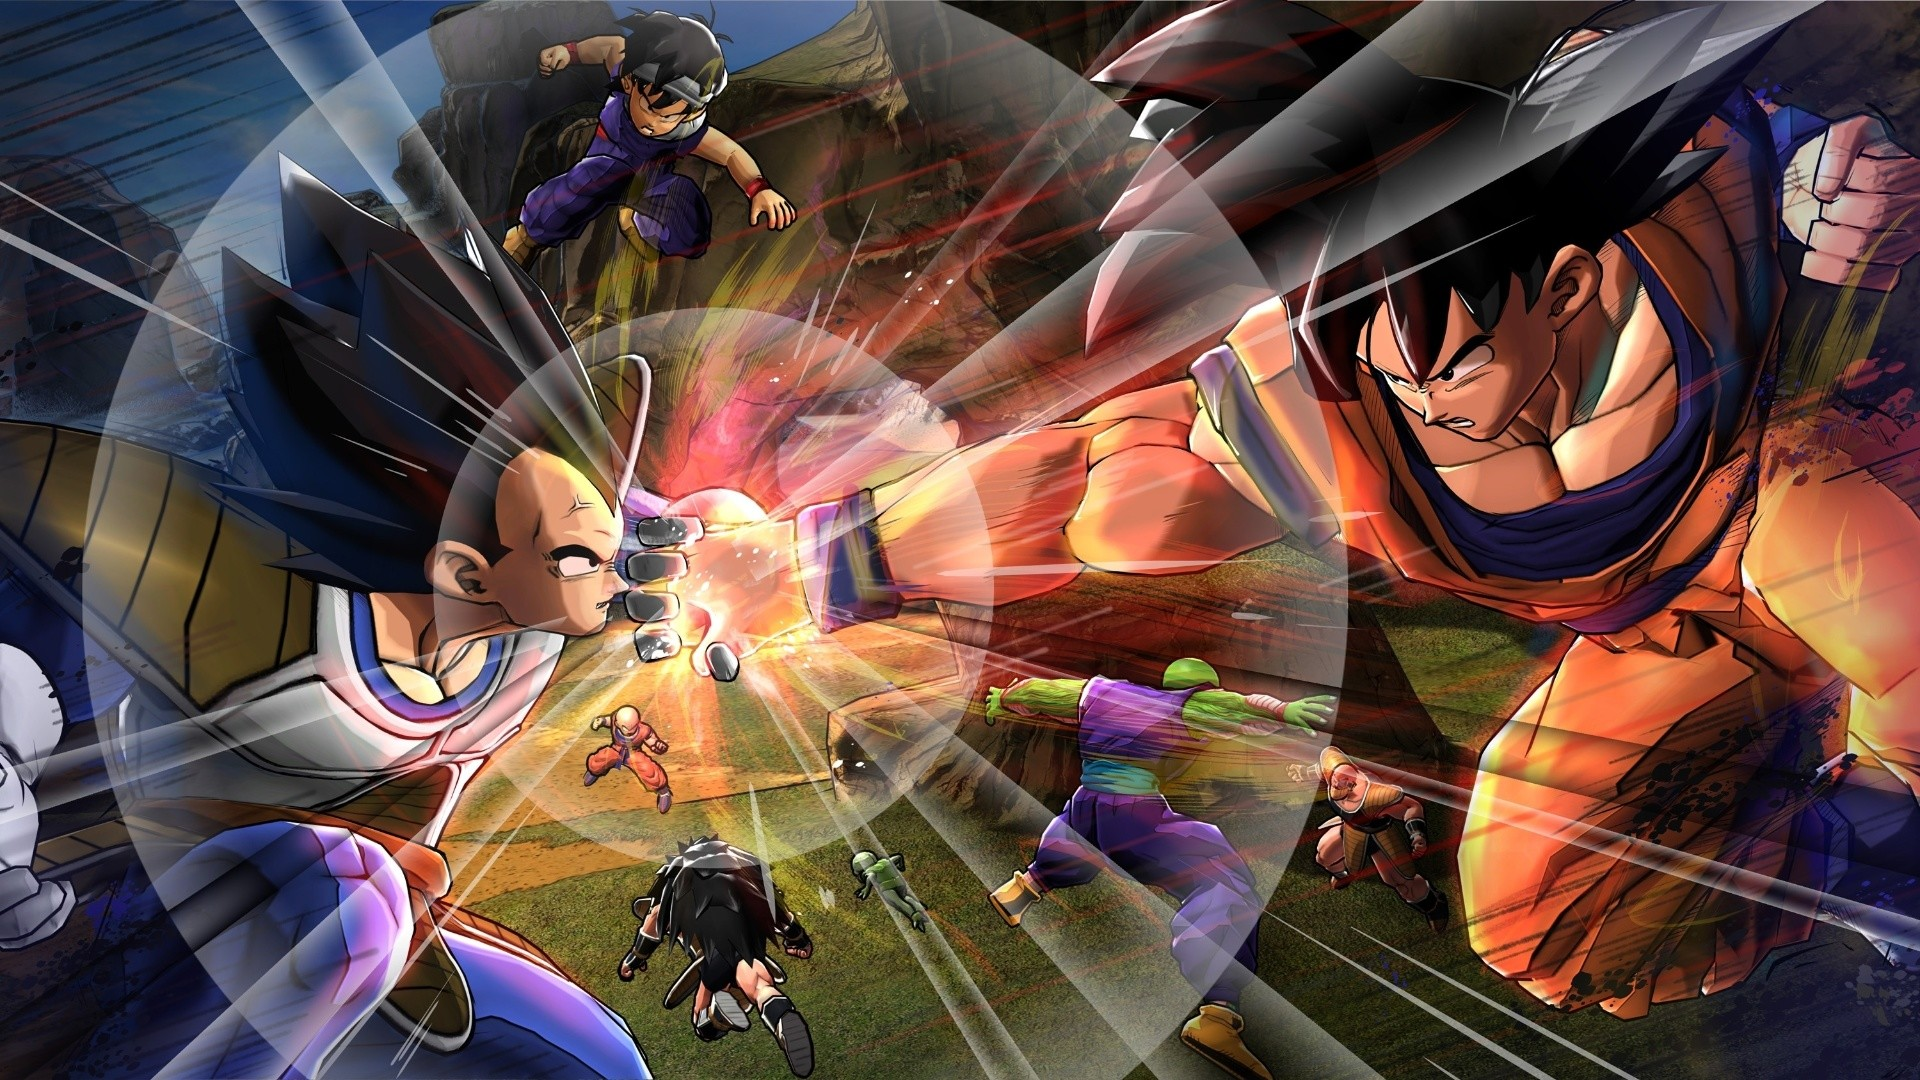 1920x1080 pc live wallpapers of dragon ball z - Buscar con Google